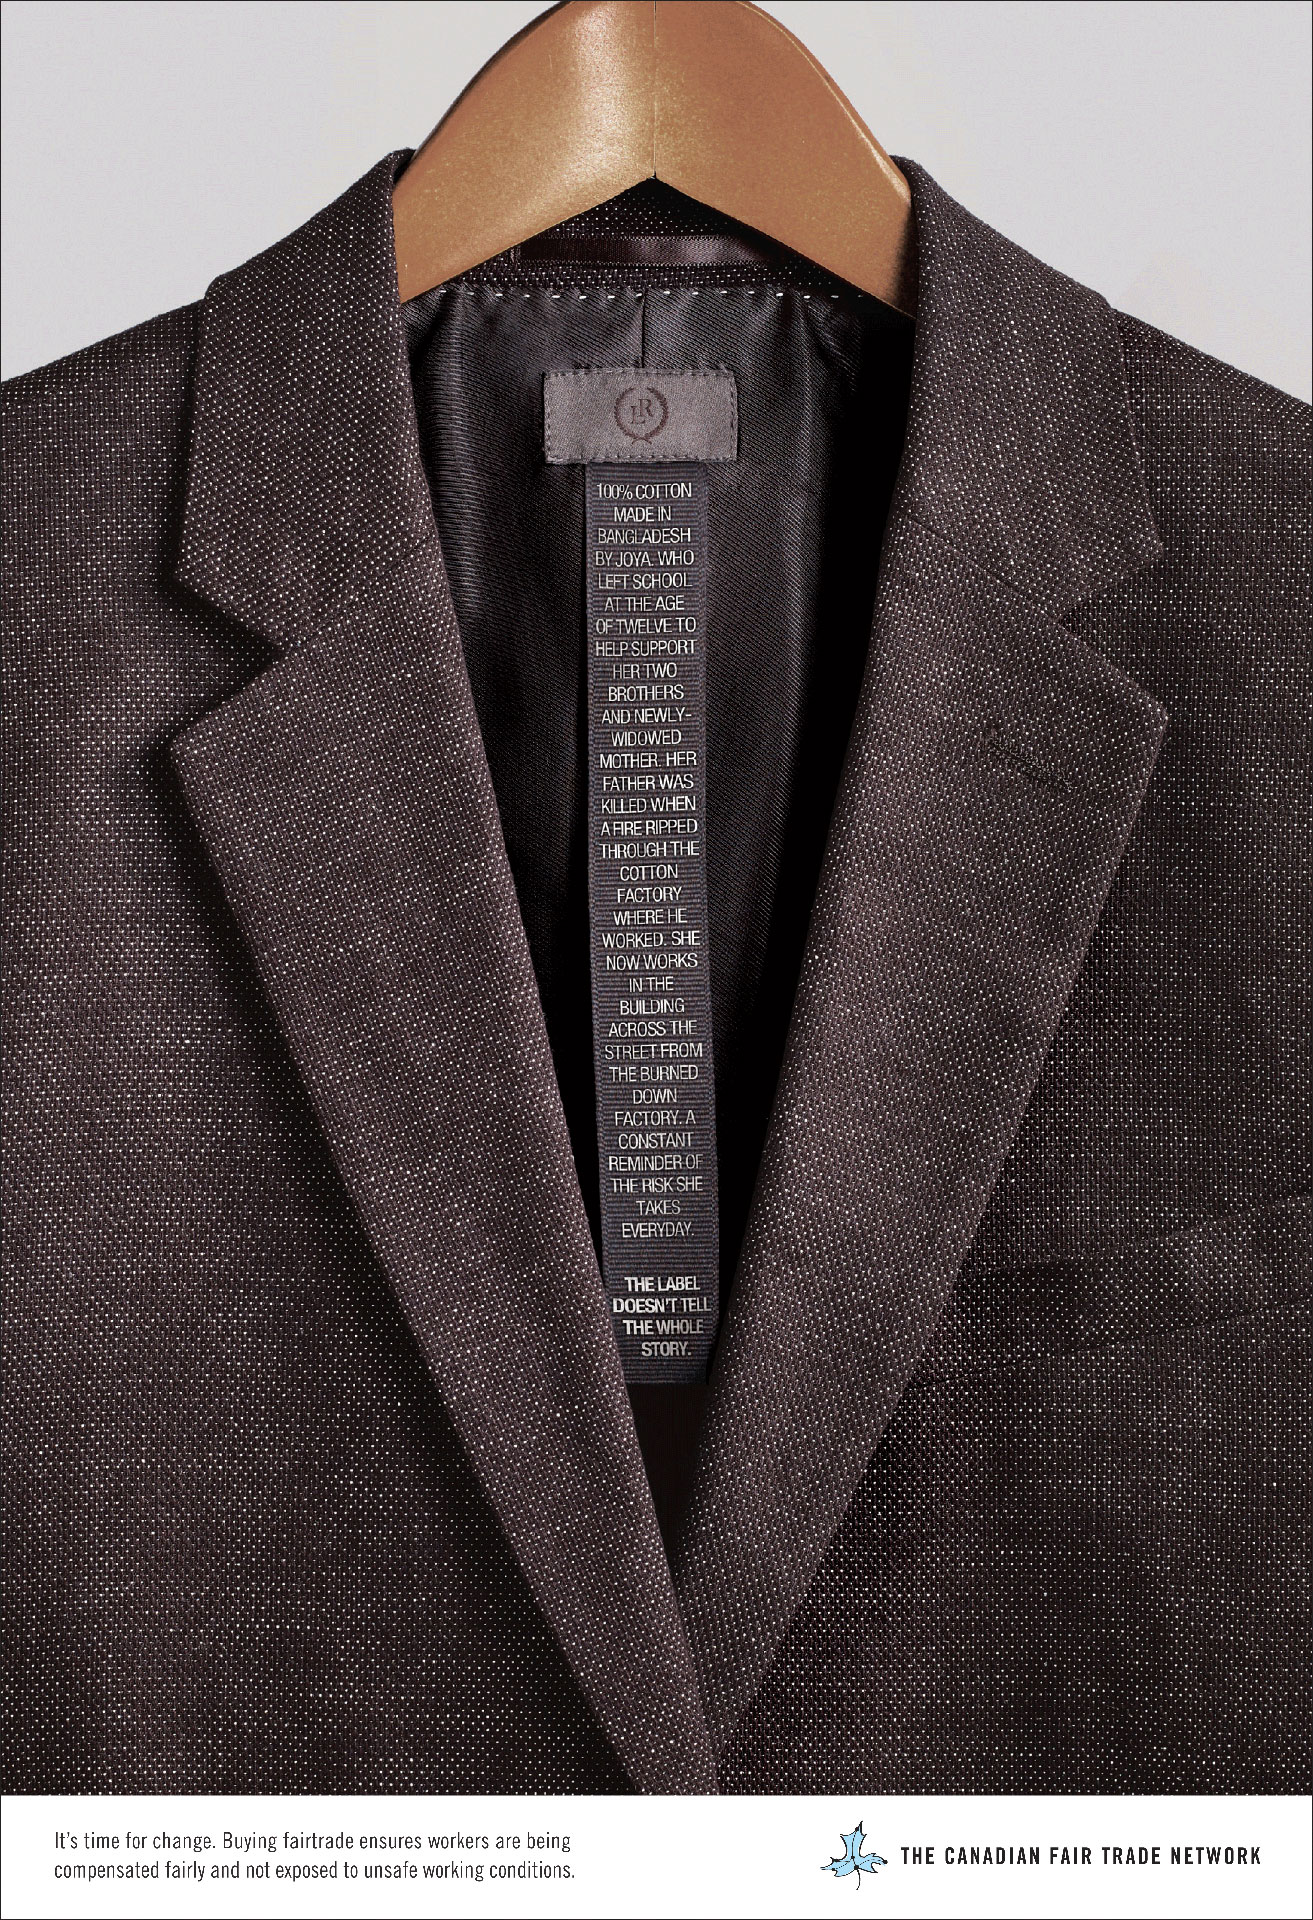 Life stories written on the clothing labels